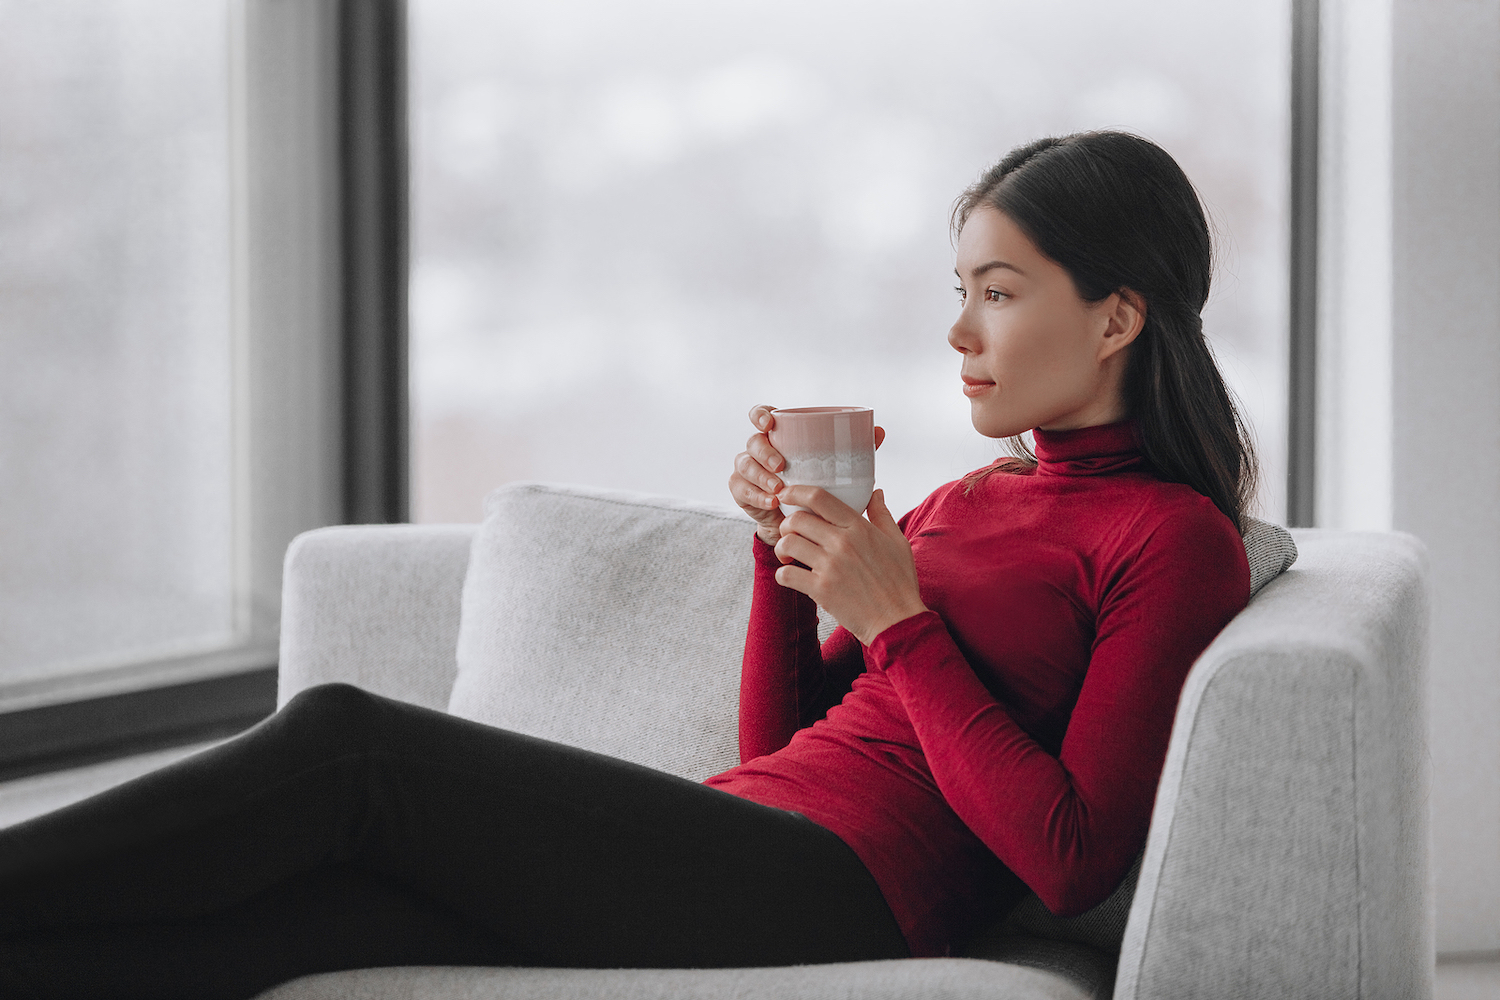 Image shows serene woman relaxing with a cup of tea.